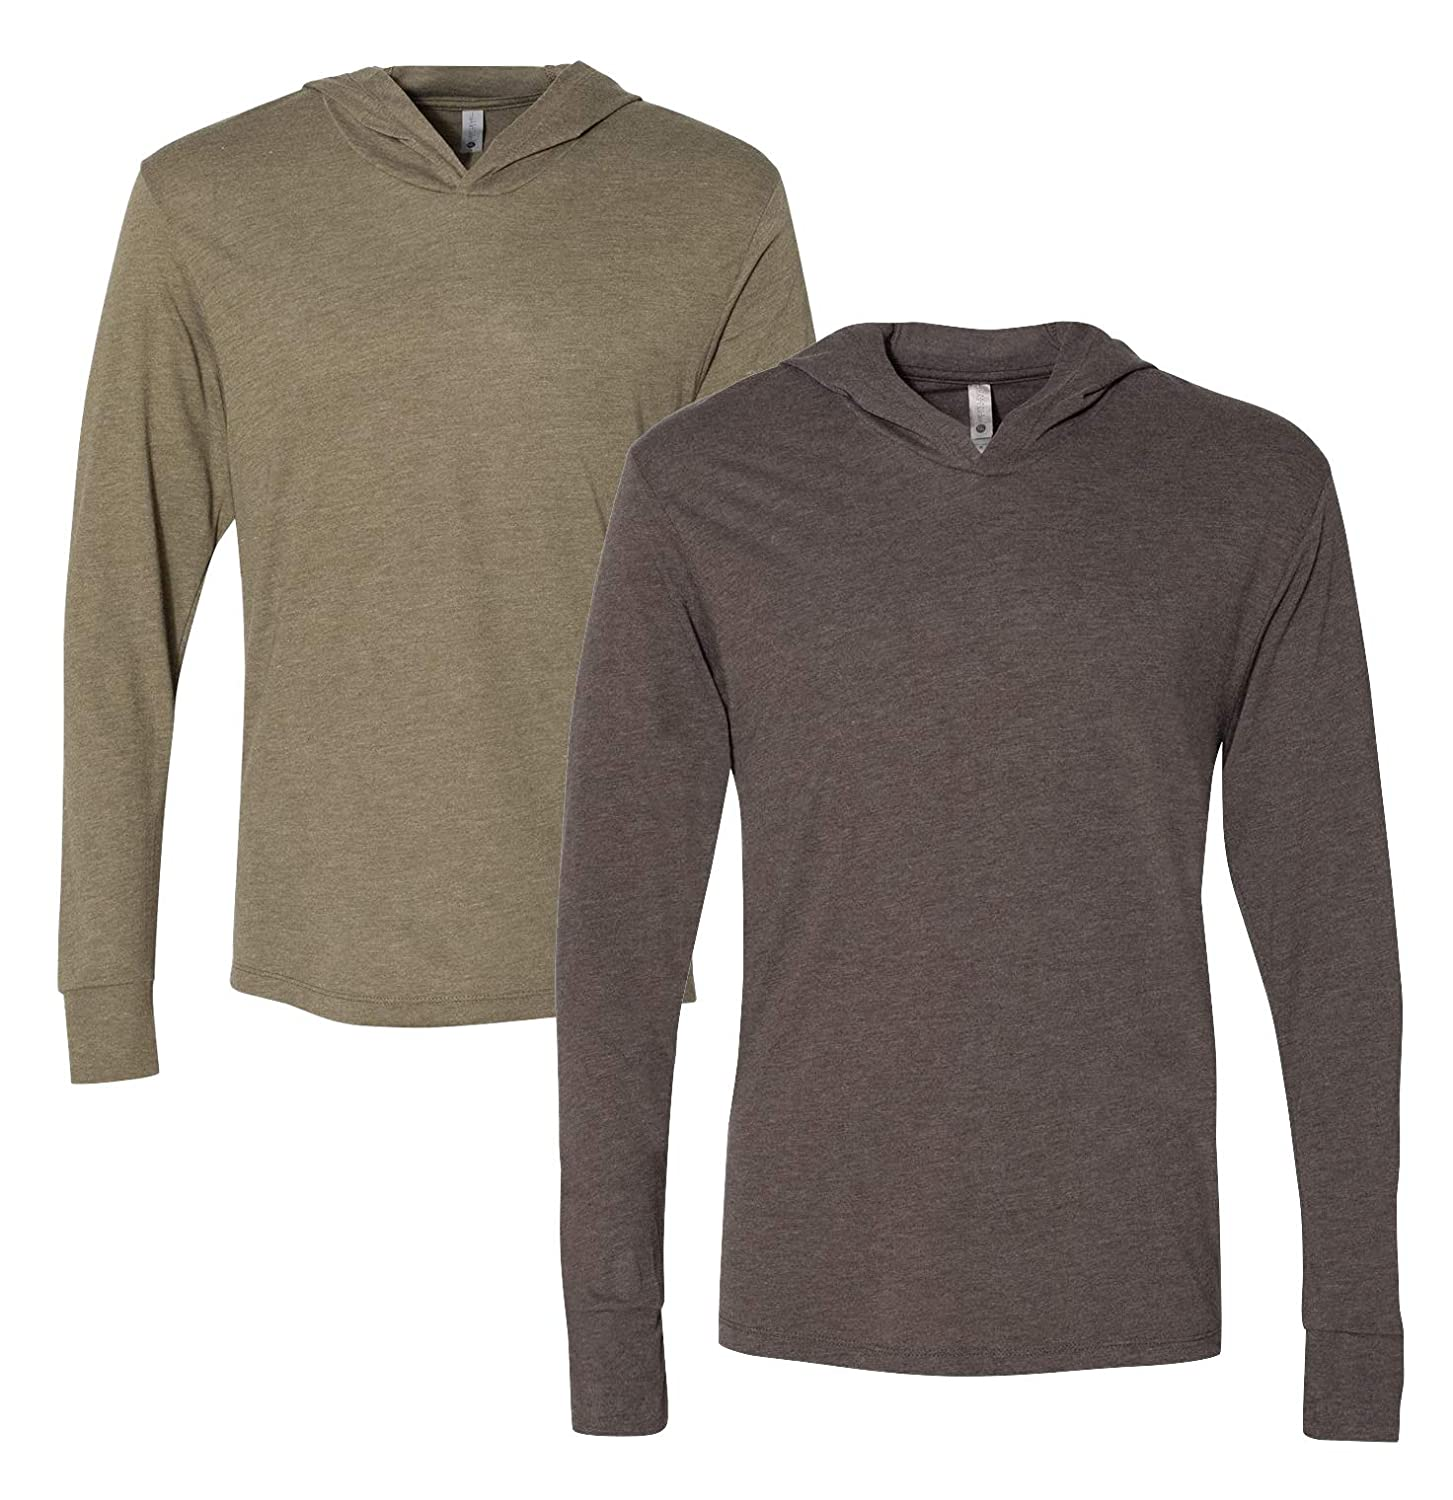 caada3170 Next Level mens Triblend Long-Sleeve Hoodie (N6021) at Amazon Men's  Clothing store: